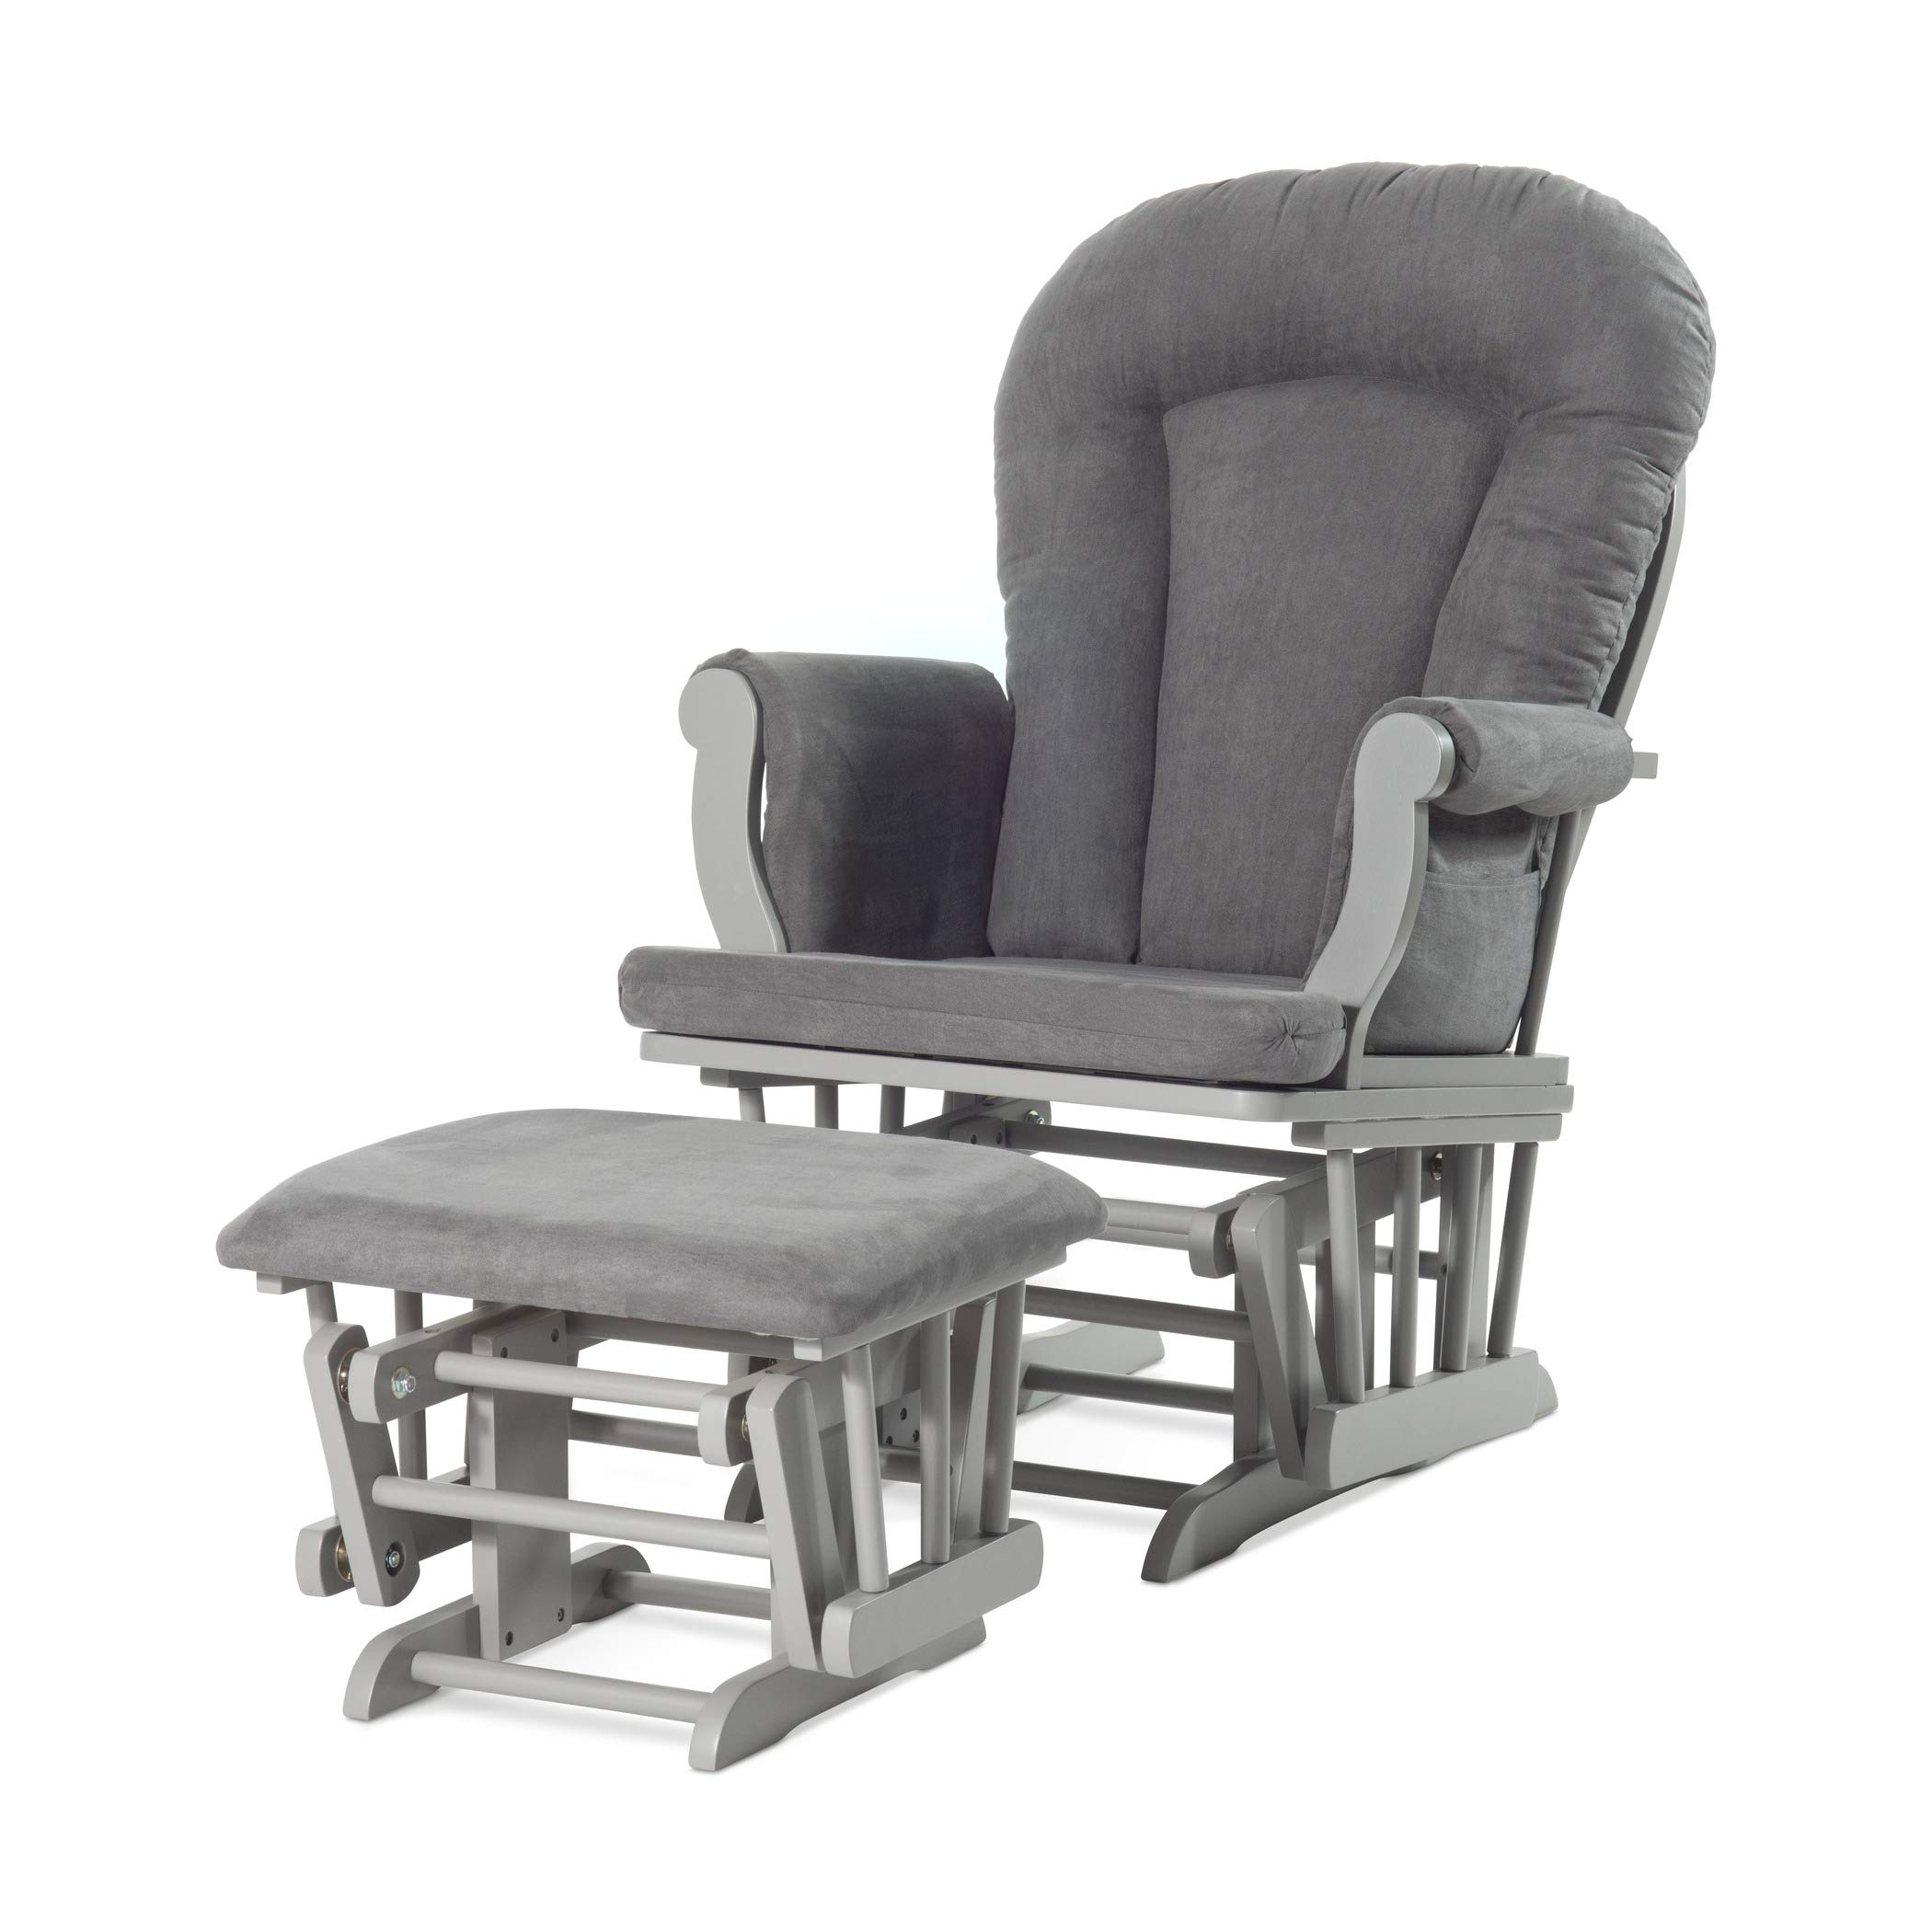 Forever Eclectic by Child Craft Cozy Glider and Ottoman, Cool Gray with Dark Gray Cushion by Childcraft